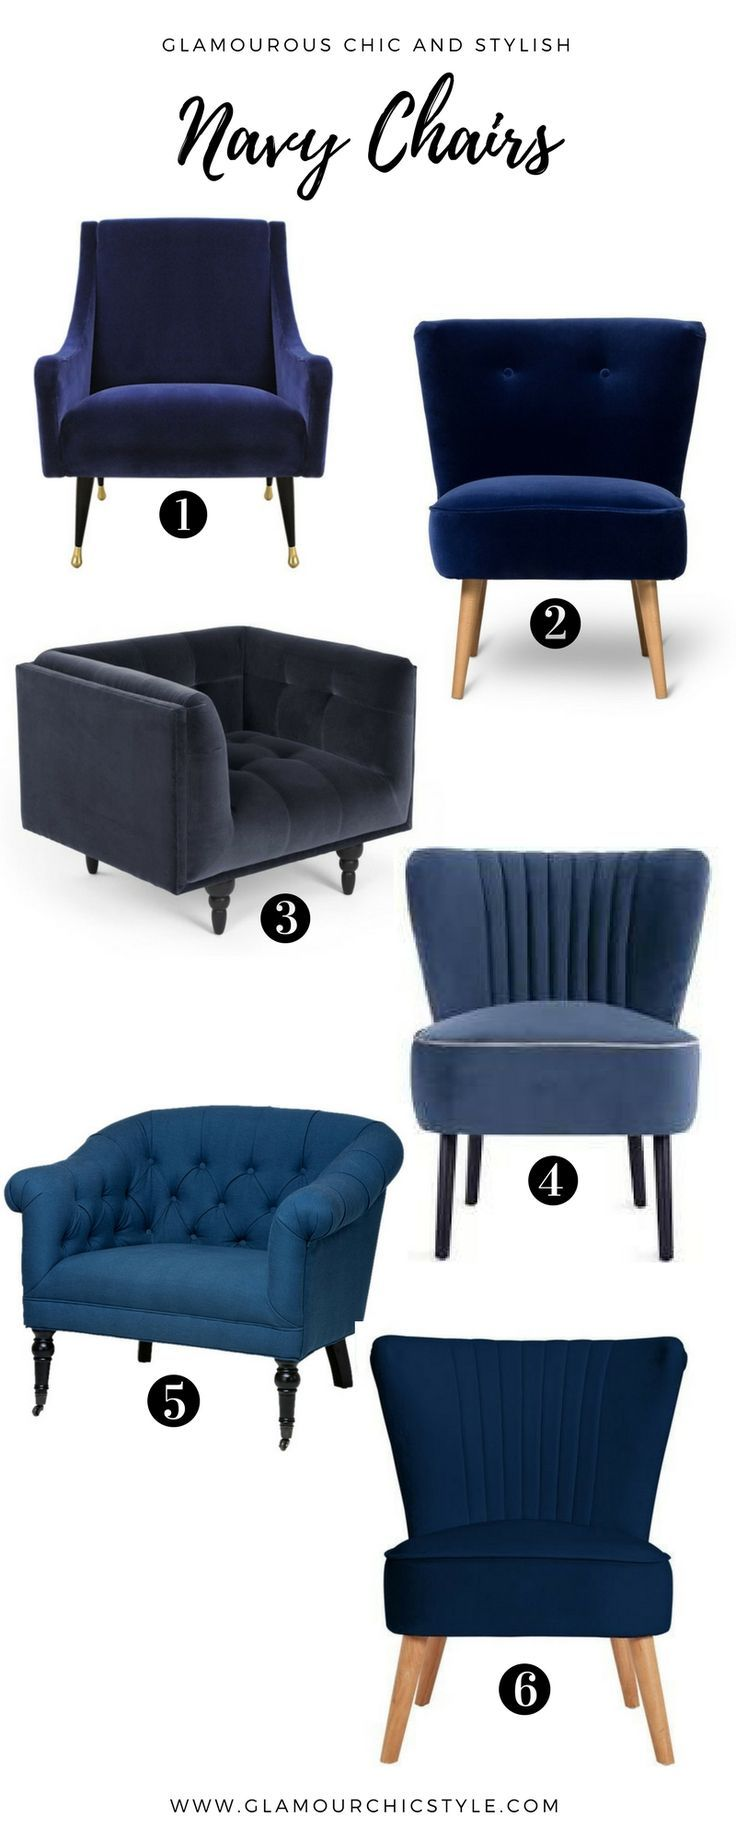 Navy Blue Chairs Inspiration And Ideas For Transforming Your Living Space.  Want To Know Where